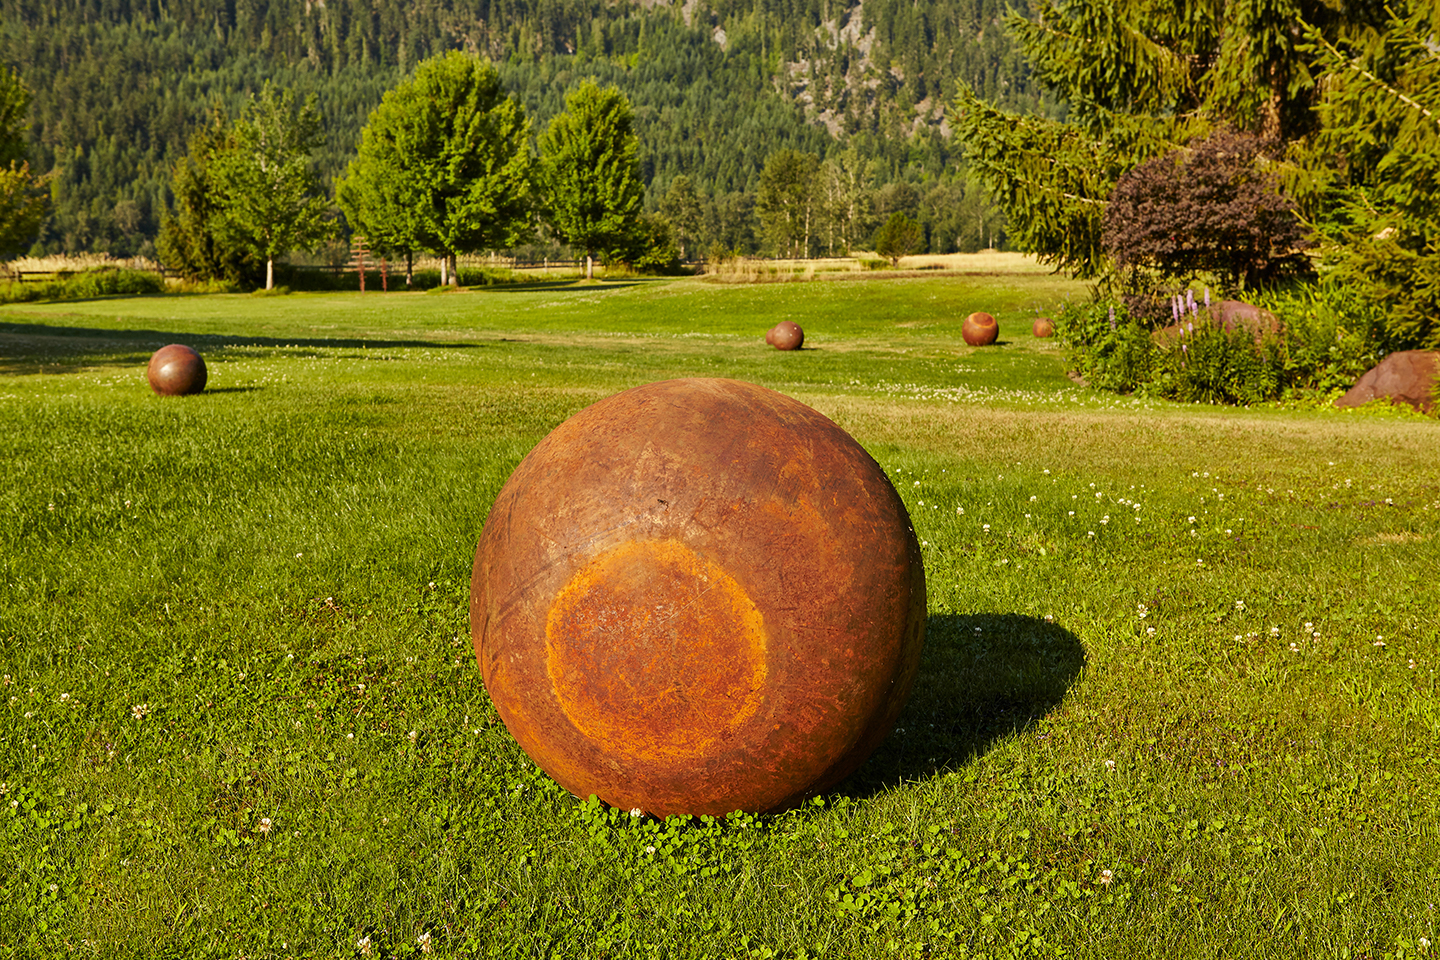 Lunar Steel Balls in Grass Field